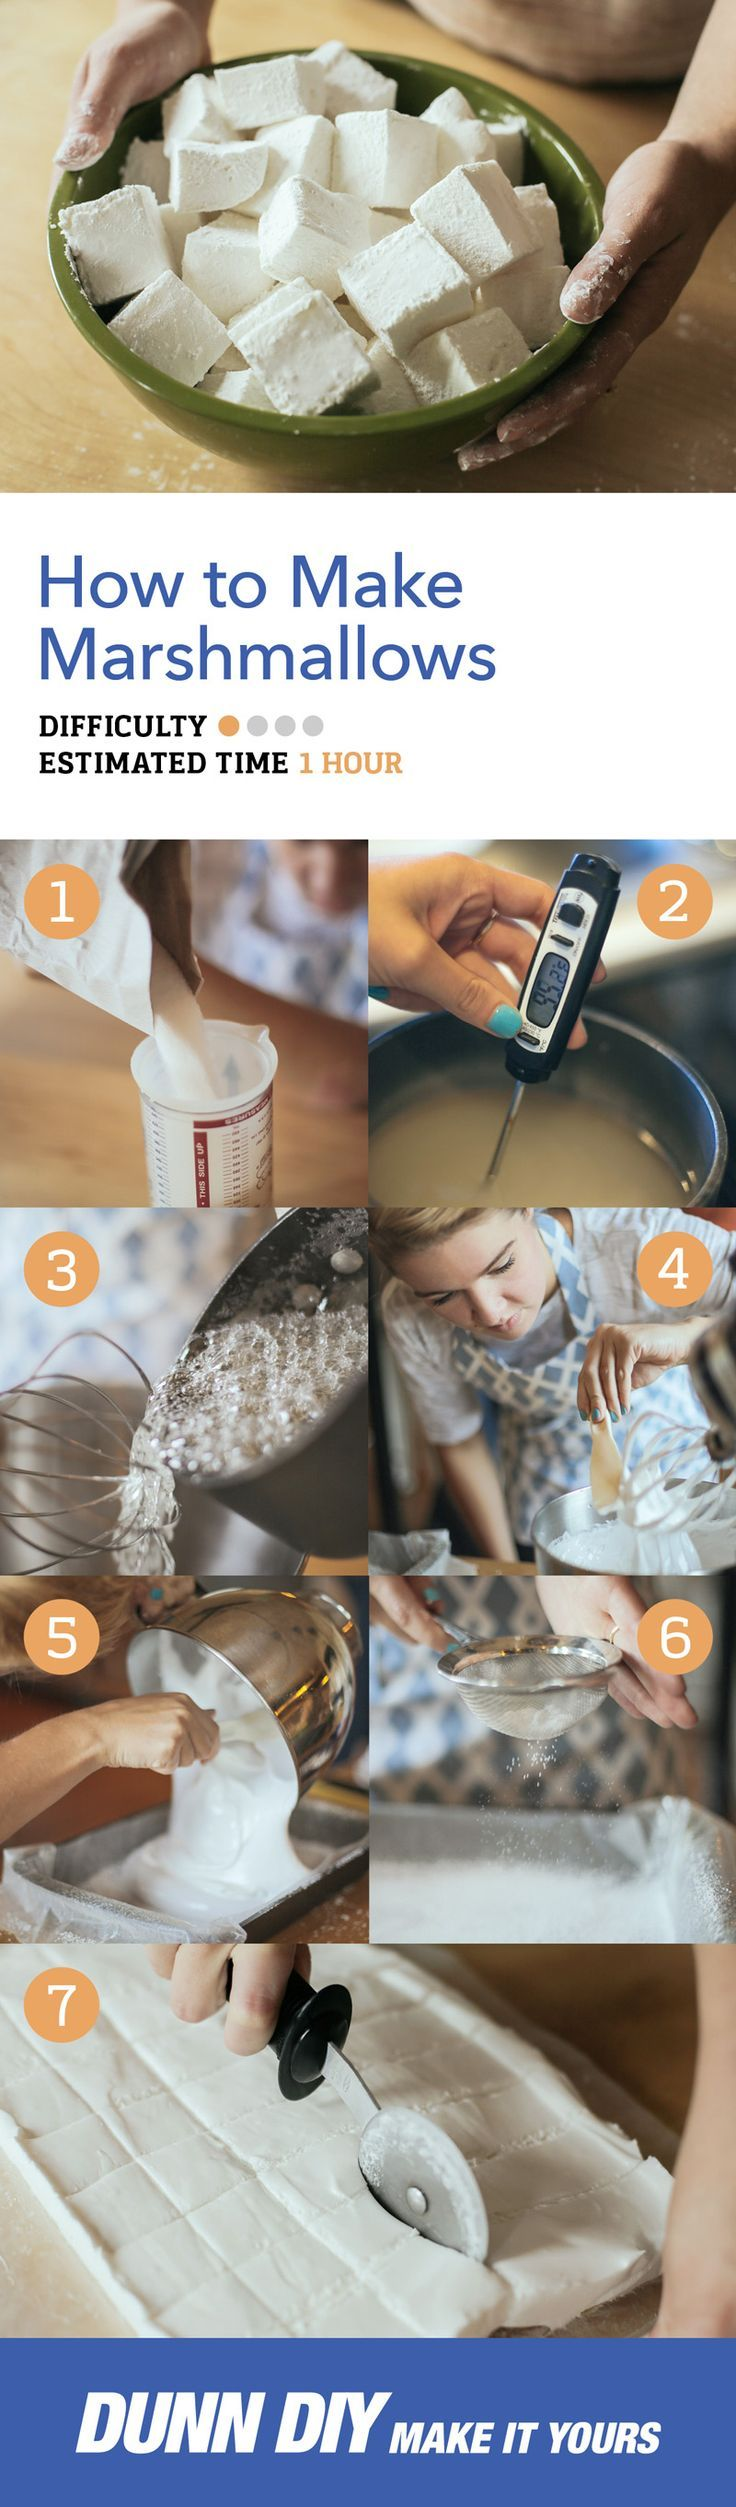 DIY: Homemade marshmallows! These are a lot of fun to make, and the perfect addition to any backyard bonfire.